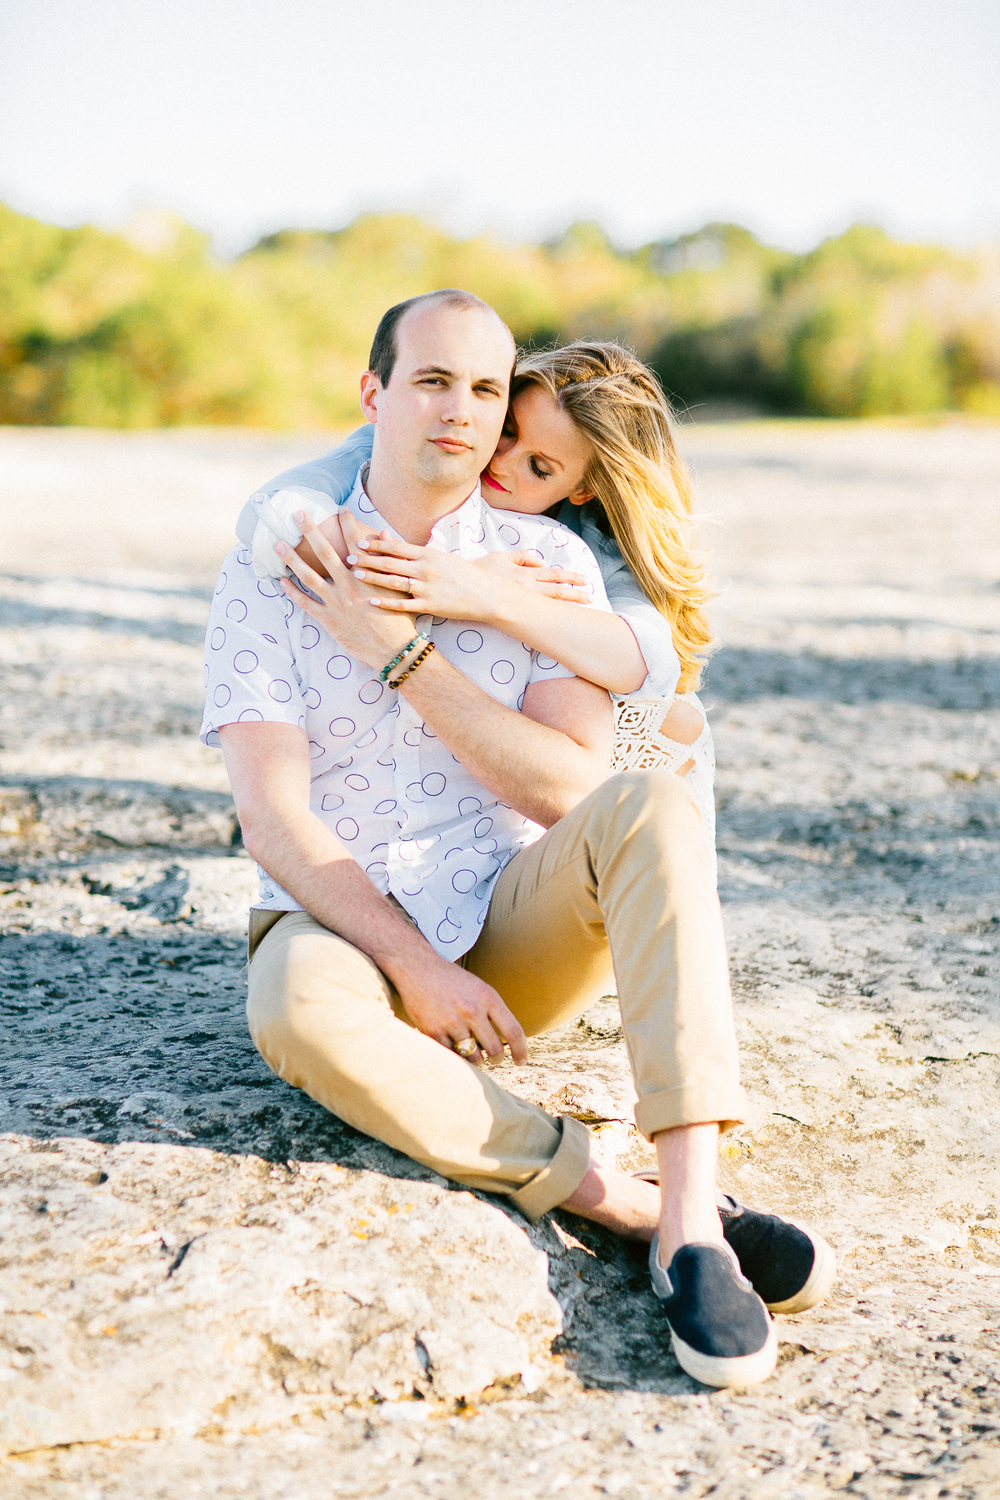 sharrock_engagements-0898.jpg